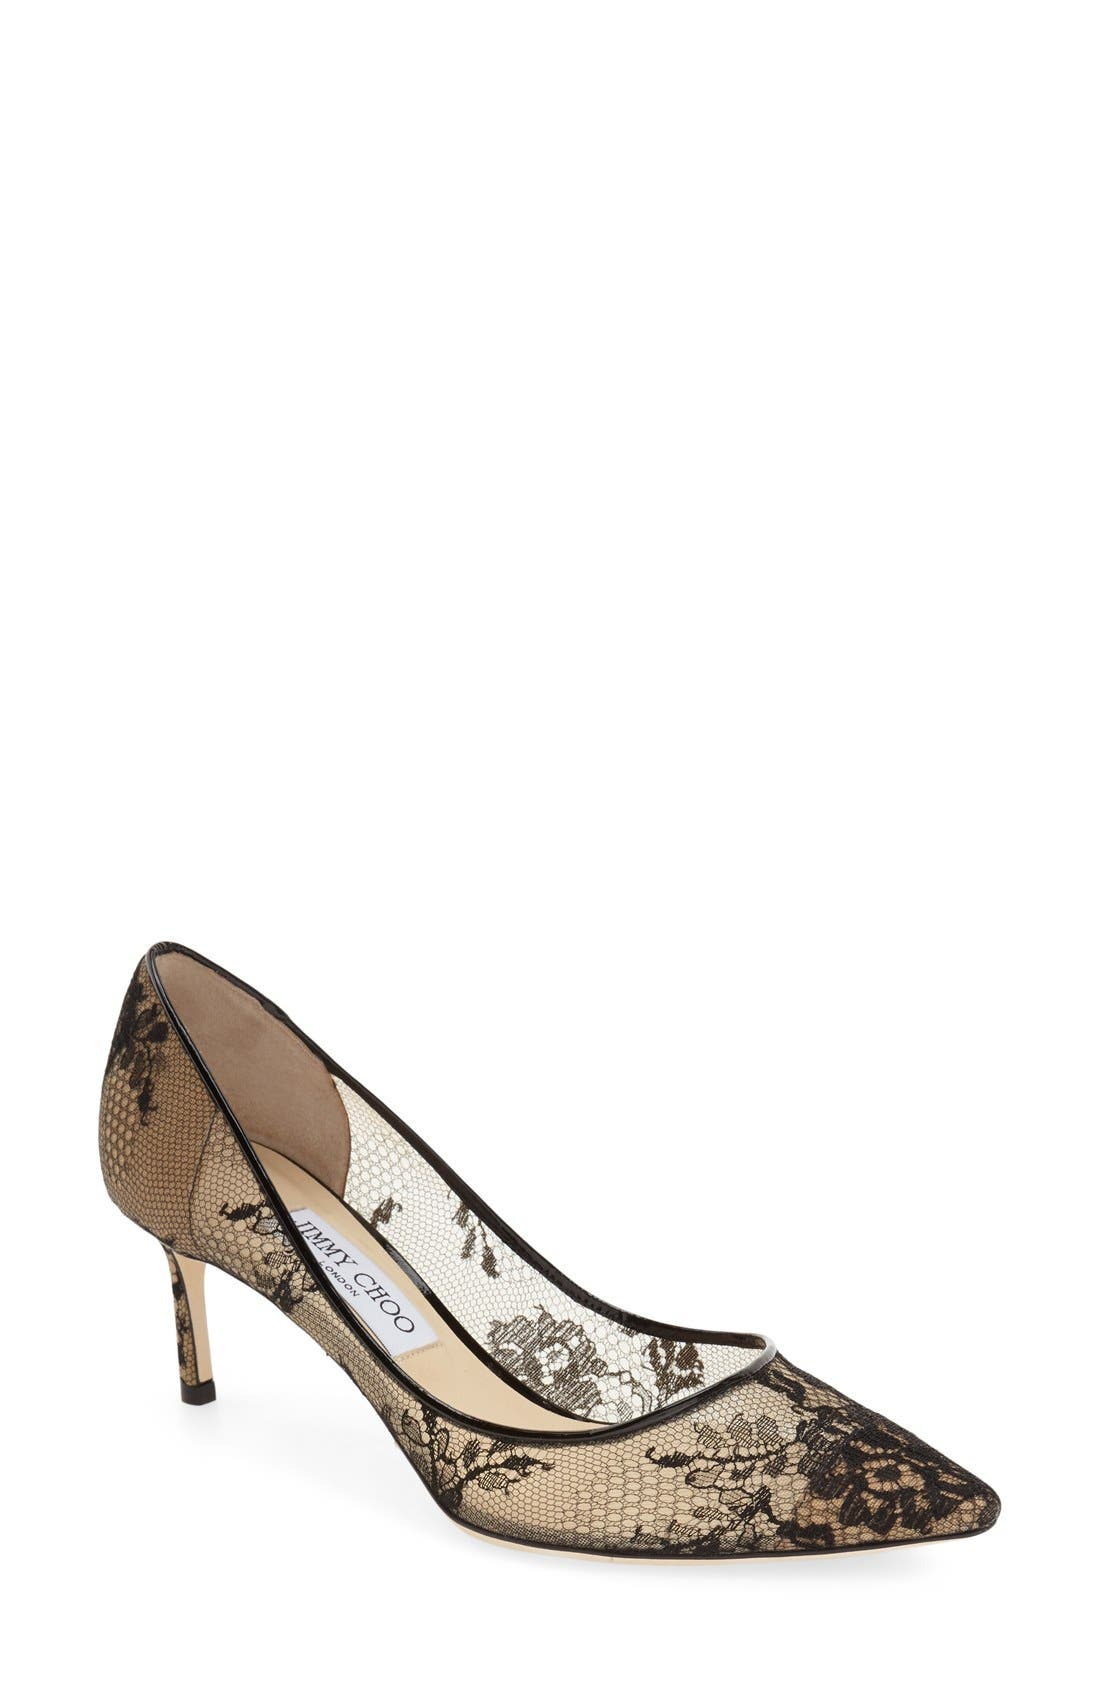 JIMMY CHOO 'Romy' Lace Pointy Toe Pump, Main, color, 002